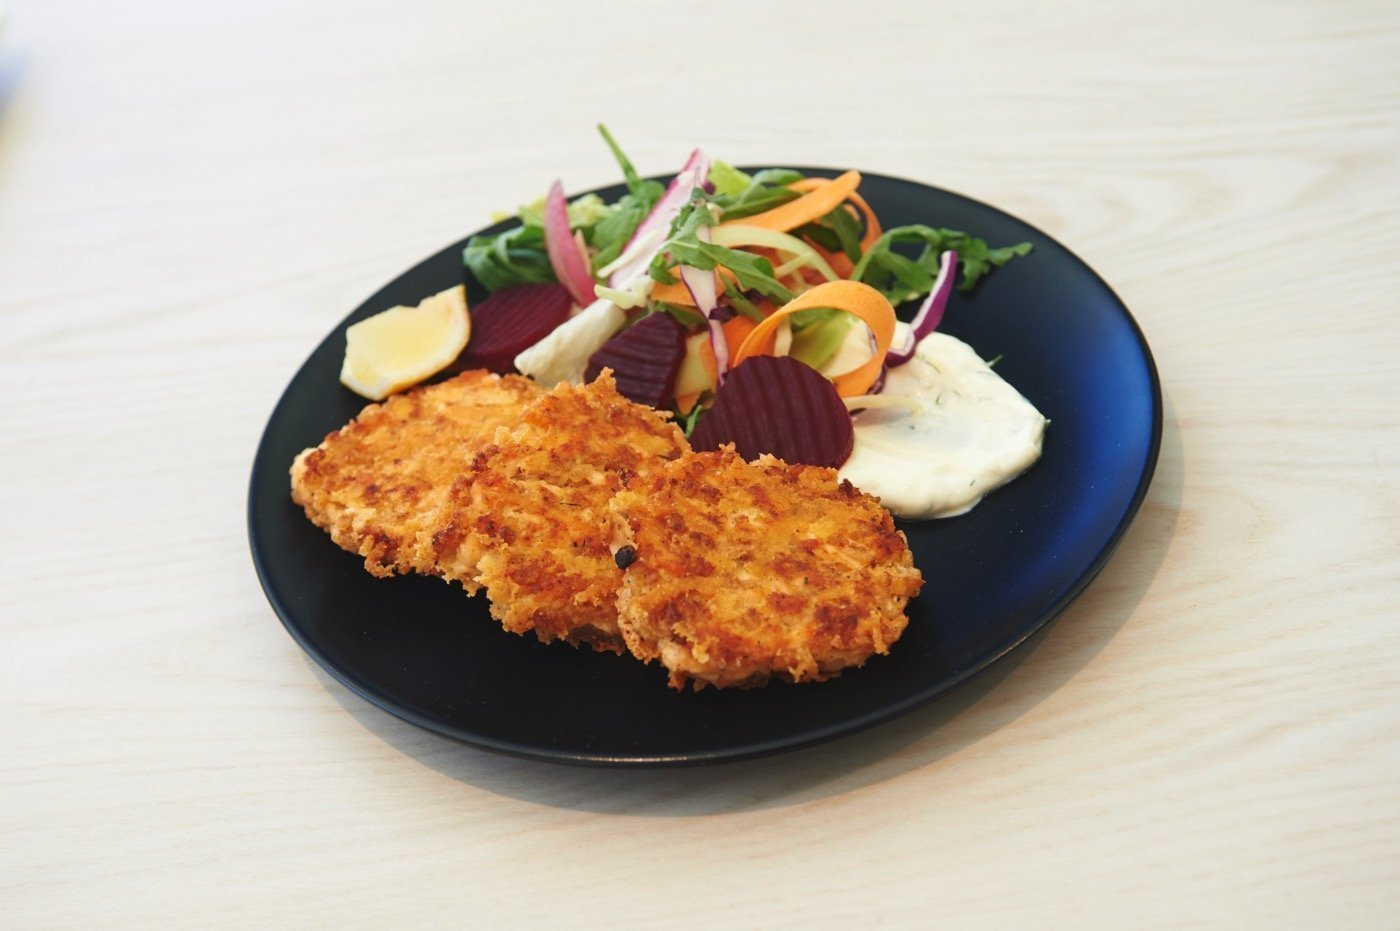 Salmon croquettes with parmesan and salad